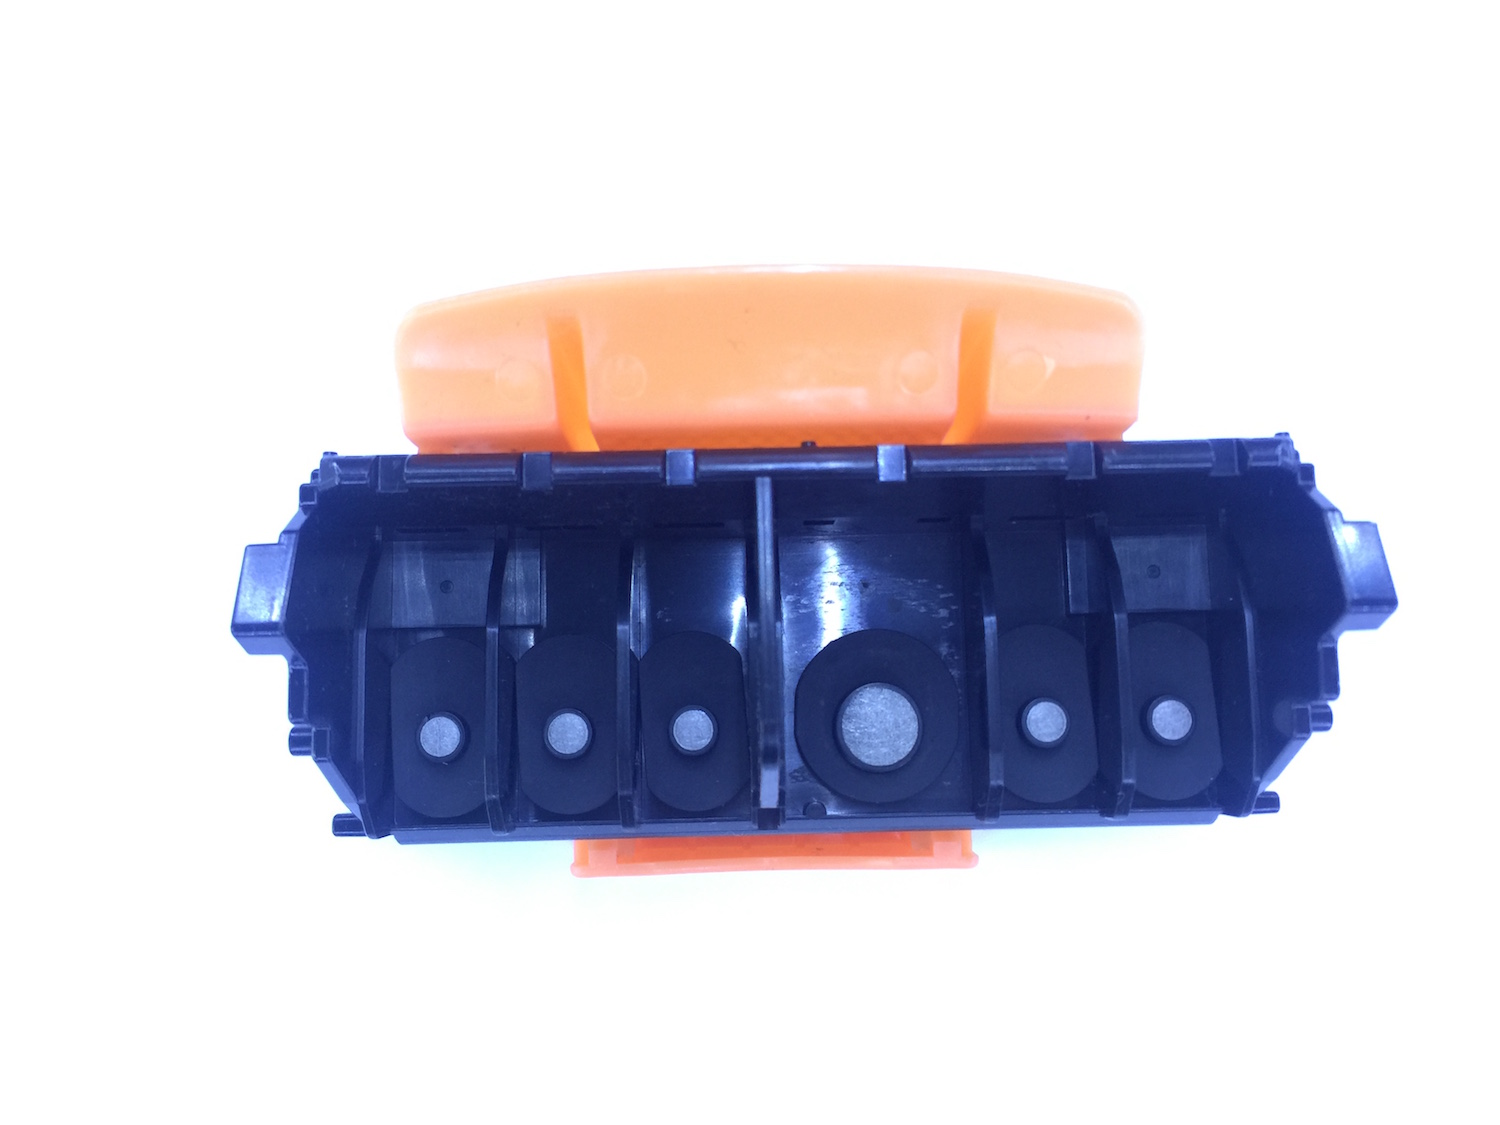 PRINT HEAD QY6-0086 PRINTHEAD FOR Canon printers ix6820, mx721, mx722, mx725, mx726, mx727 mx922 iX6840 printhead qy6 0075 print head for canon ip4500 ip5300 mp610mp810mx850 printers